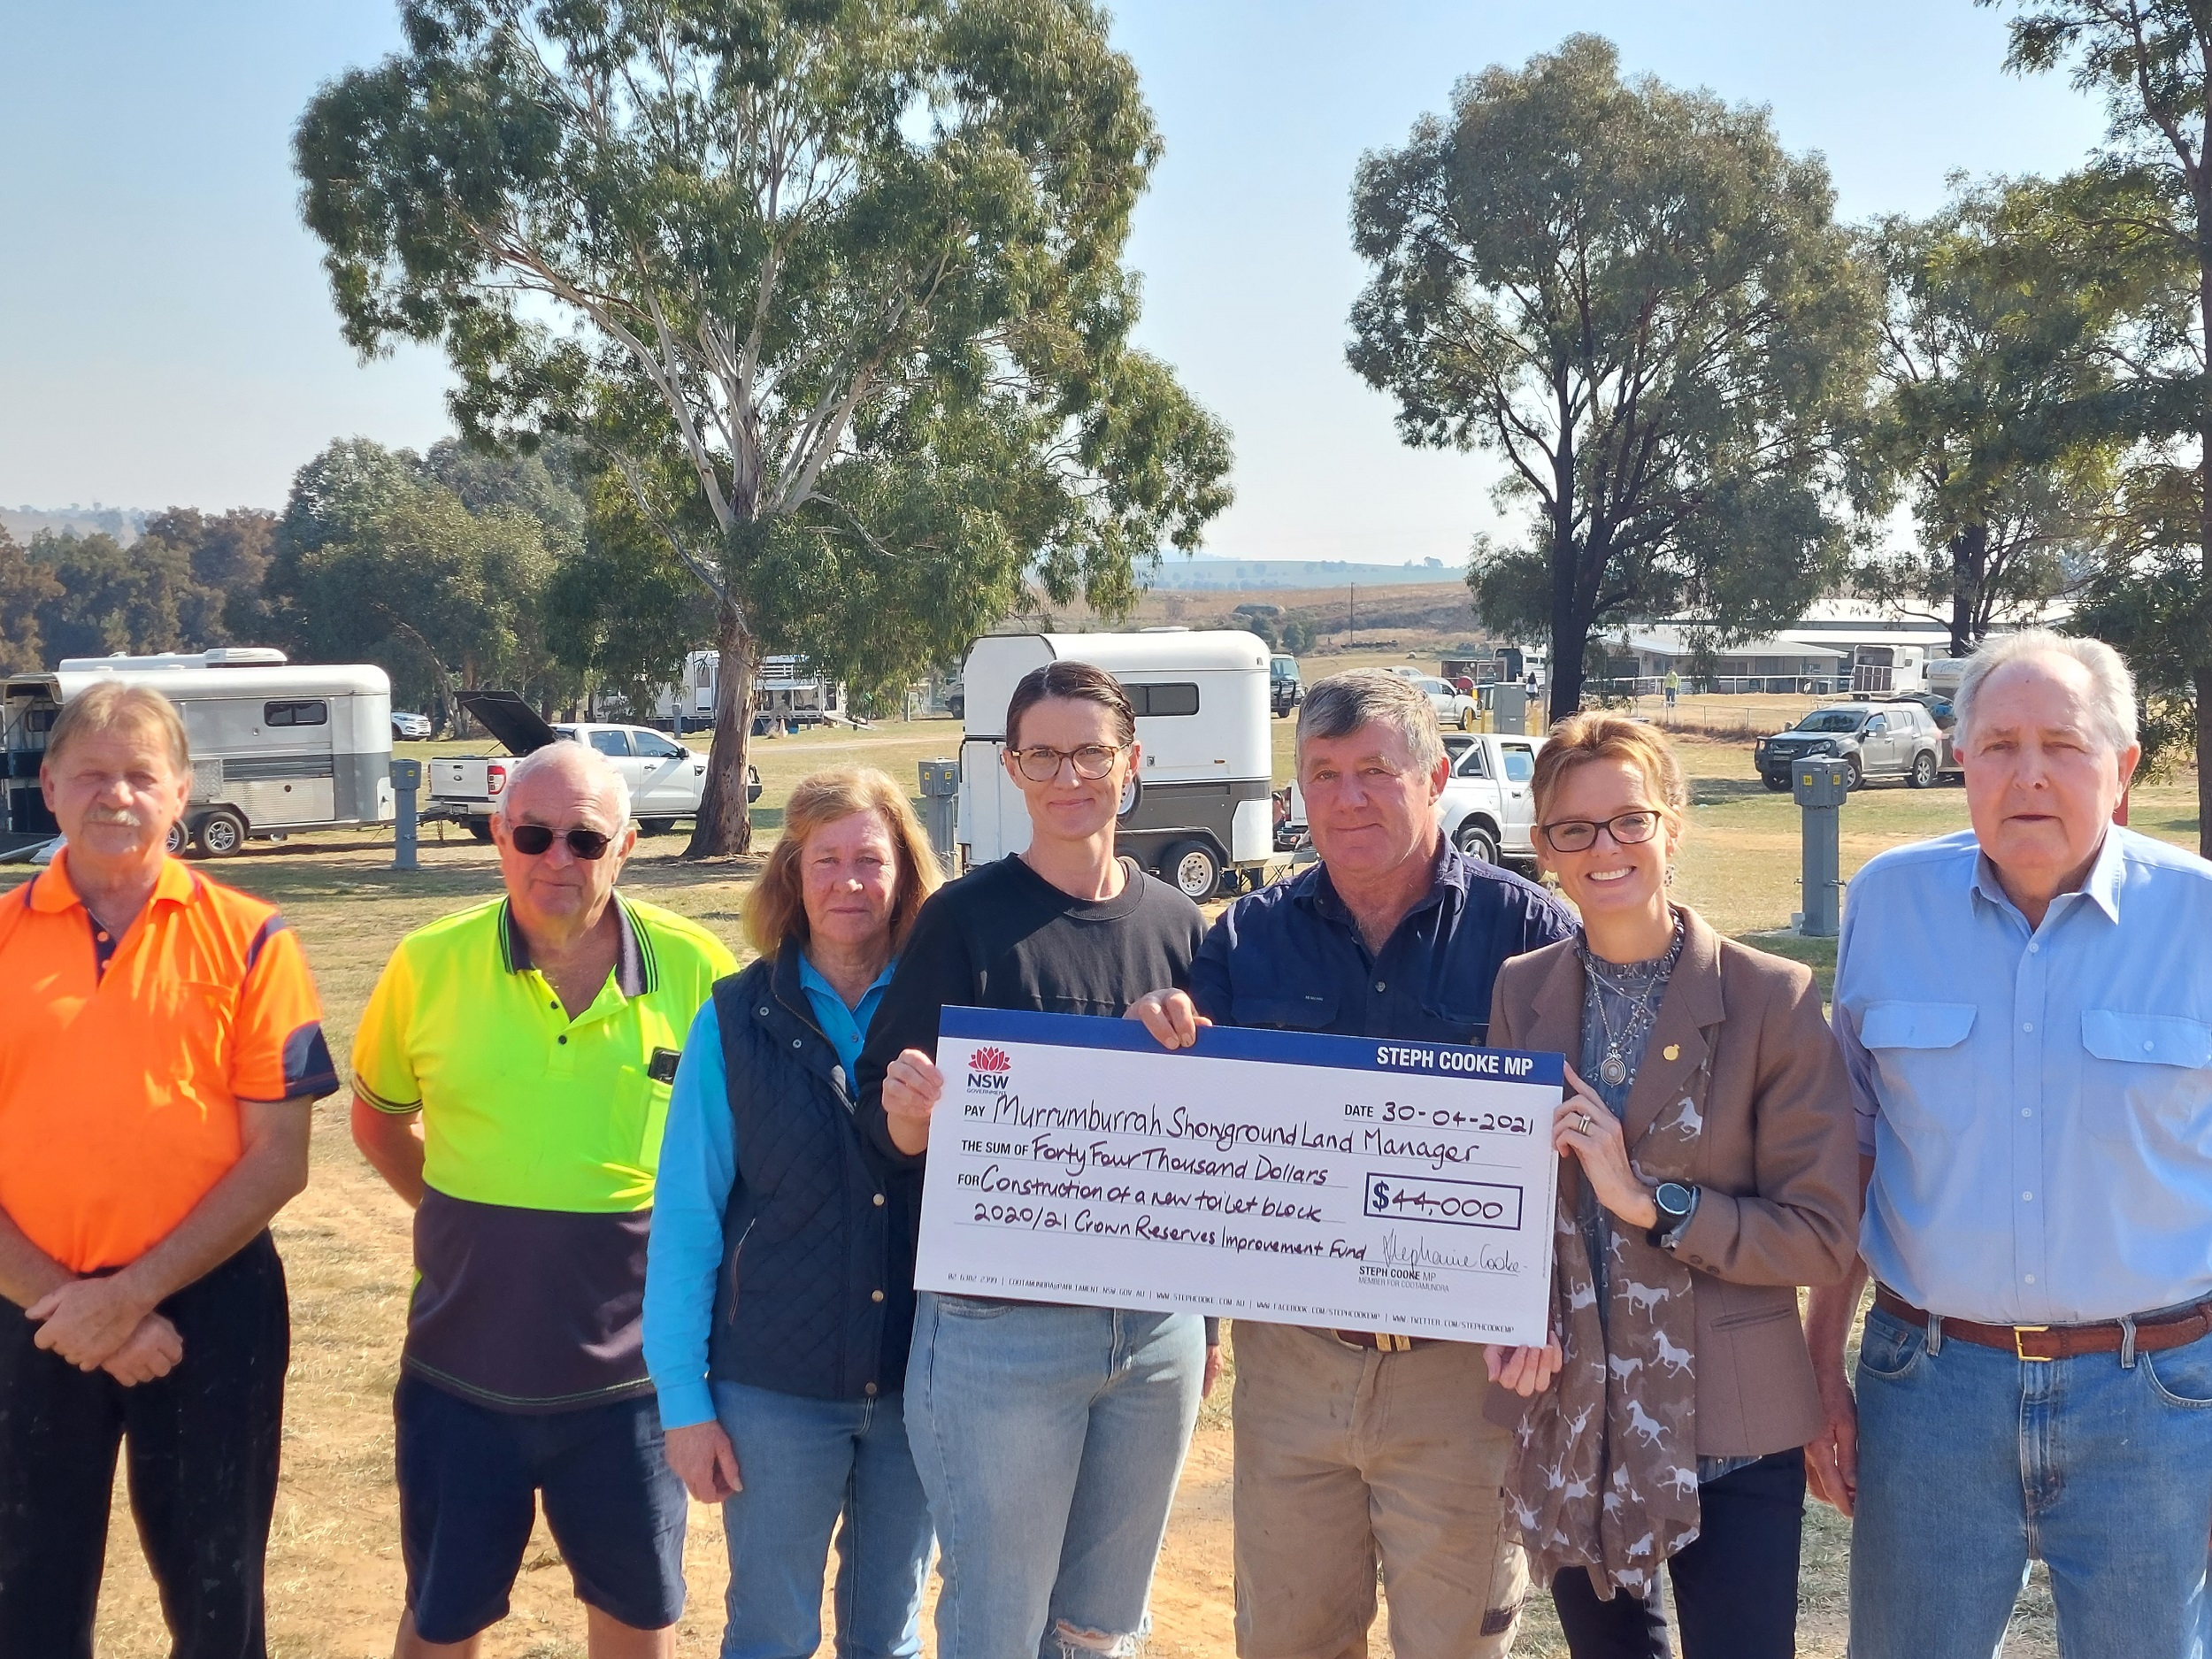 Steph Cooke and Kim Hill with the Murrumburrah Showground Land Managers. They hold a large cheque, horse floats can be seen behind them.